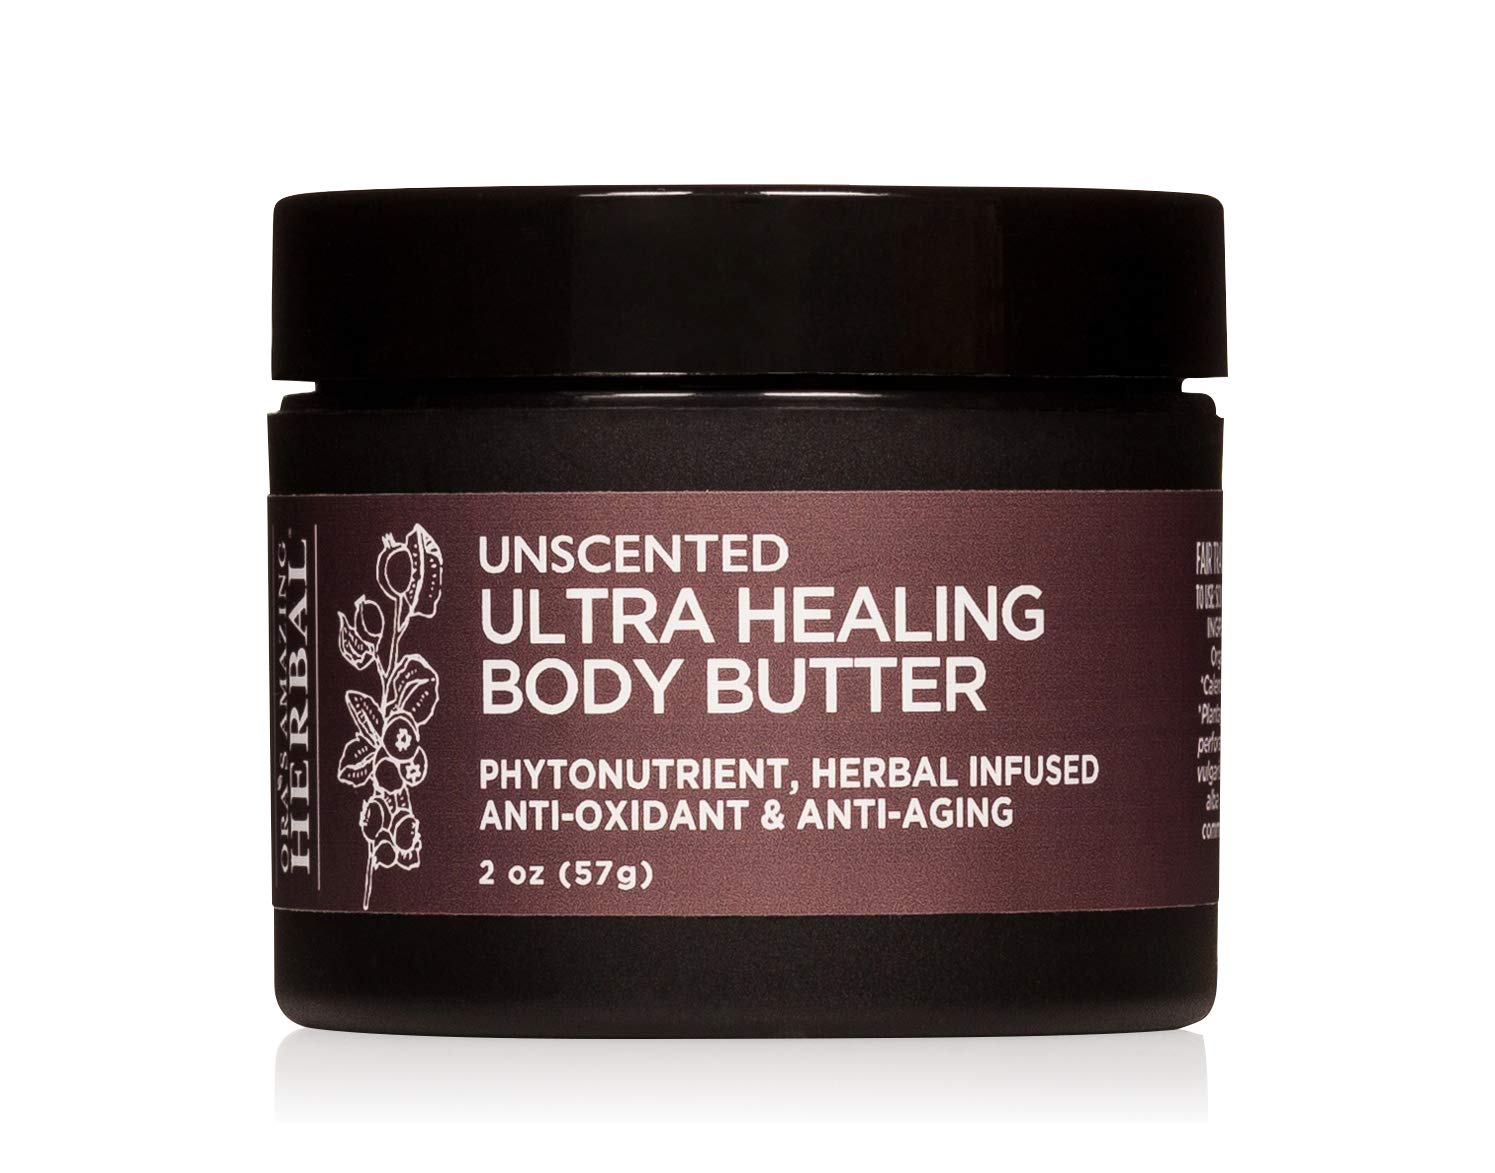 Fragrance Free Body Butter, Ultra Healing Body Butter with Organic Shea Butter, Unscented Body Butter, Hand Cream For Sensitive Skin, Hand Repair Cream, Travel Size, 2 oz